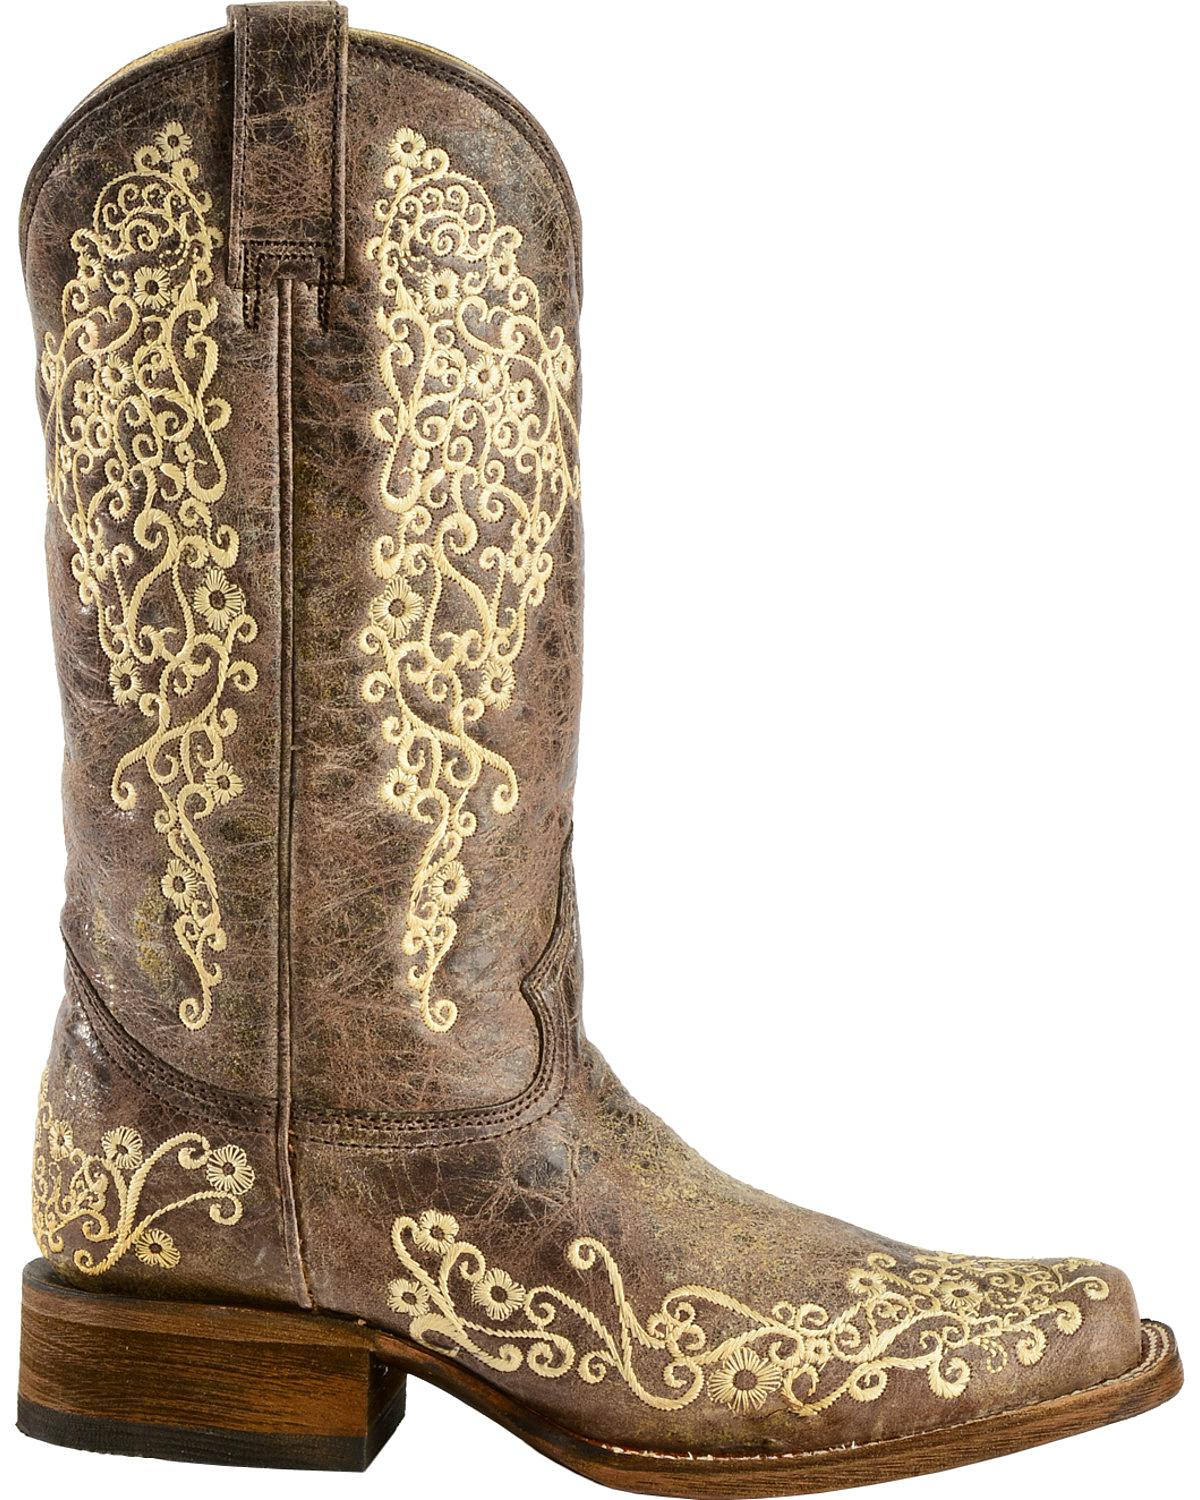 corral crater bone embroidery boot